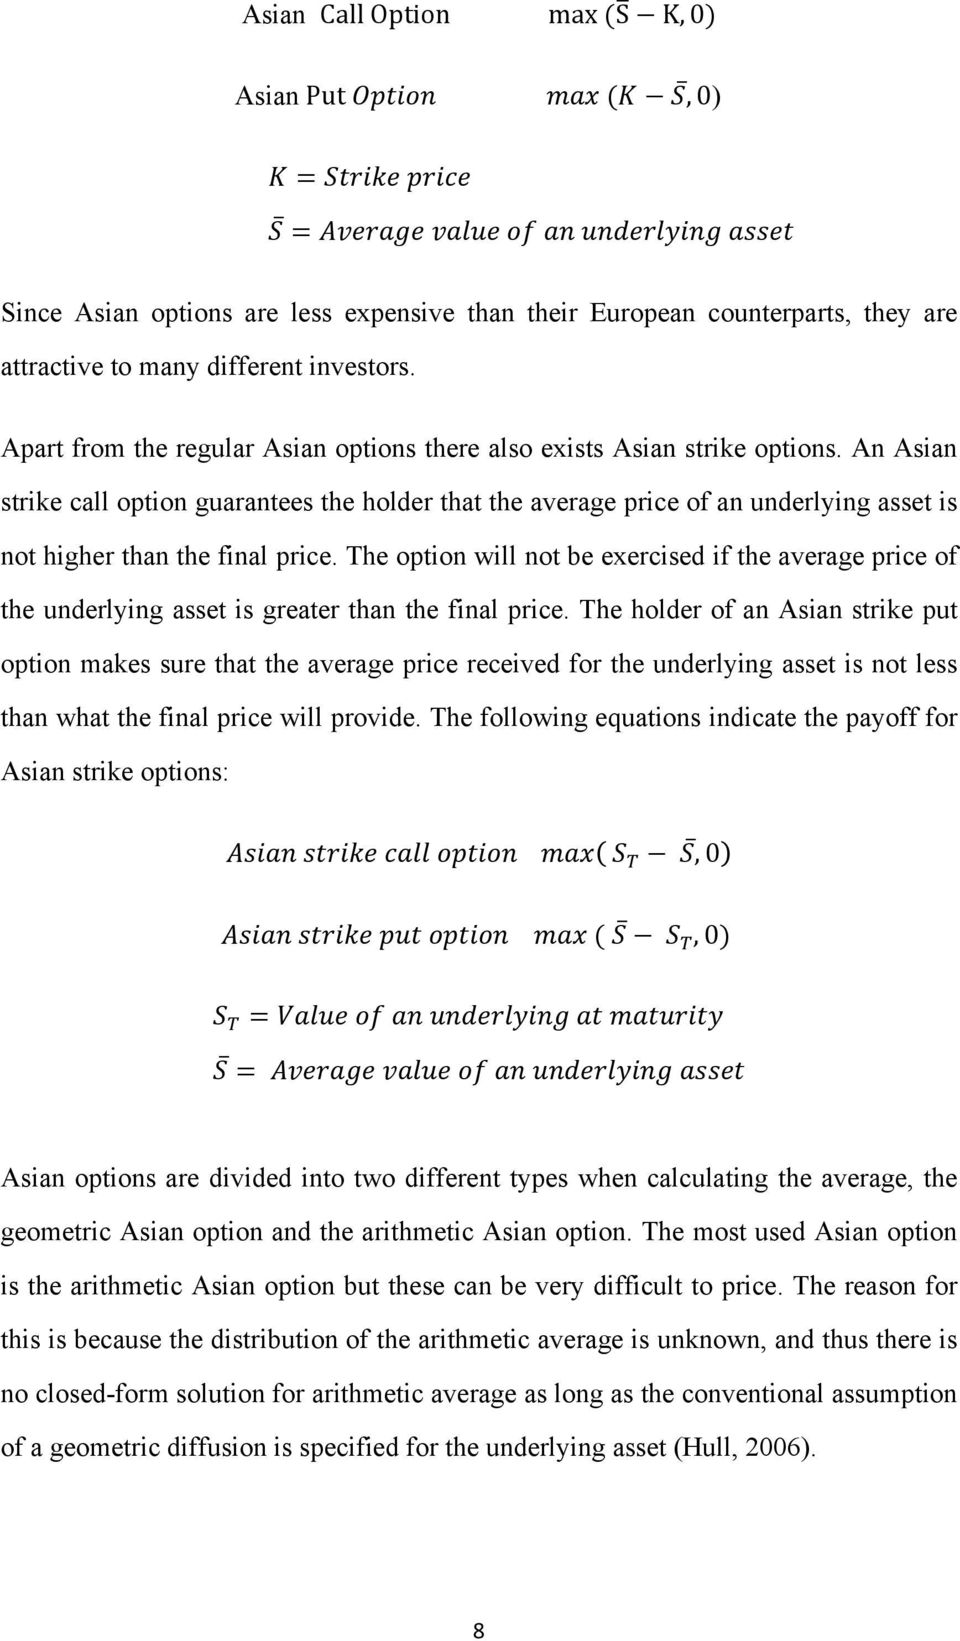 An Asian strike call option guarantees the holder that the average price of an underlying asset is not higher than the final price.